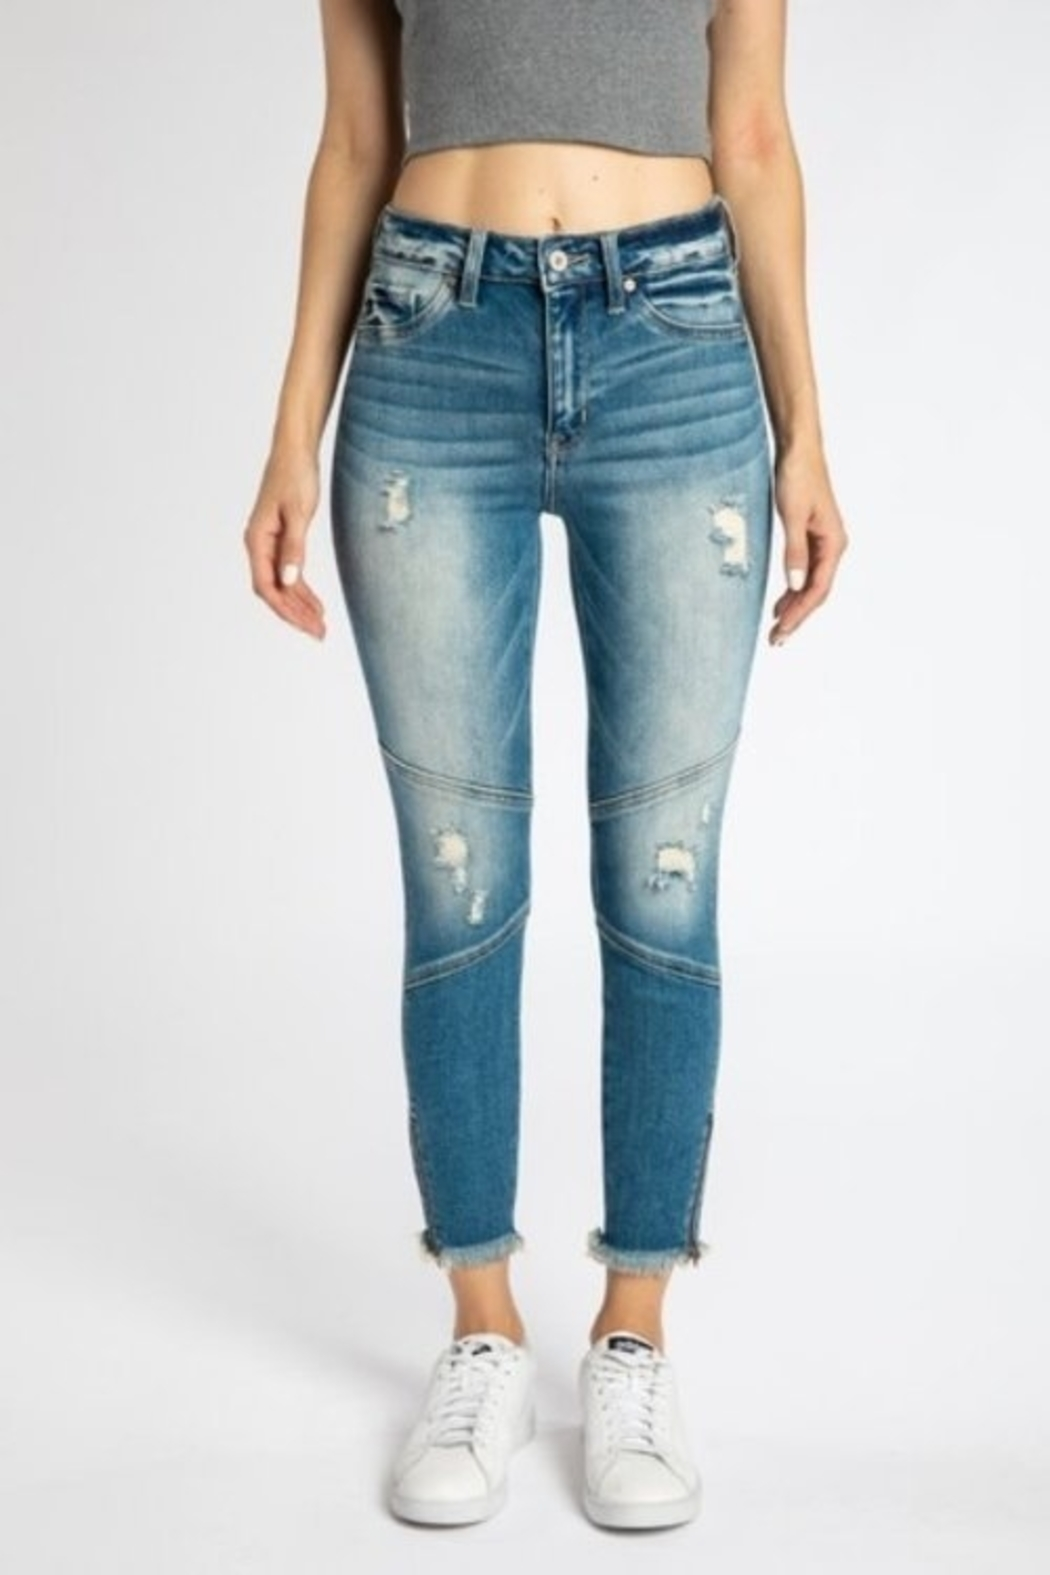 KanCan High Rise Ankle Skinny (kc9193m) - Main Image